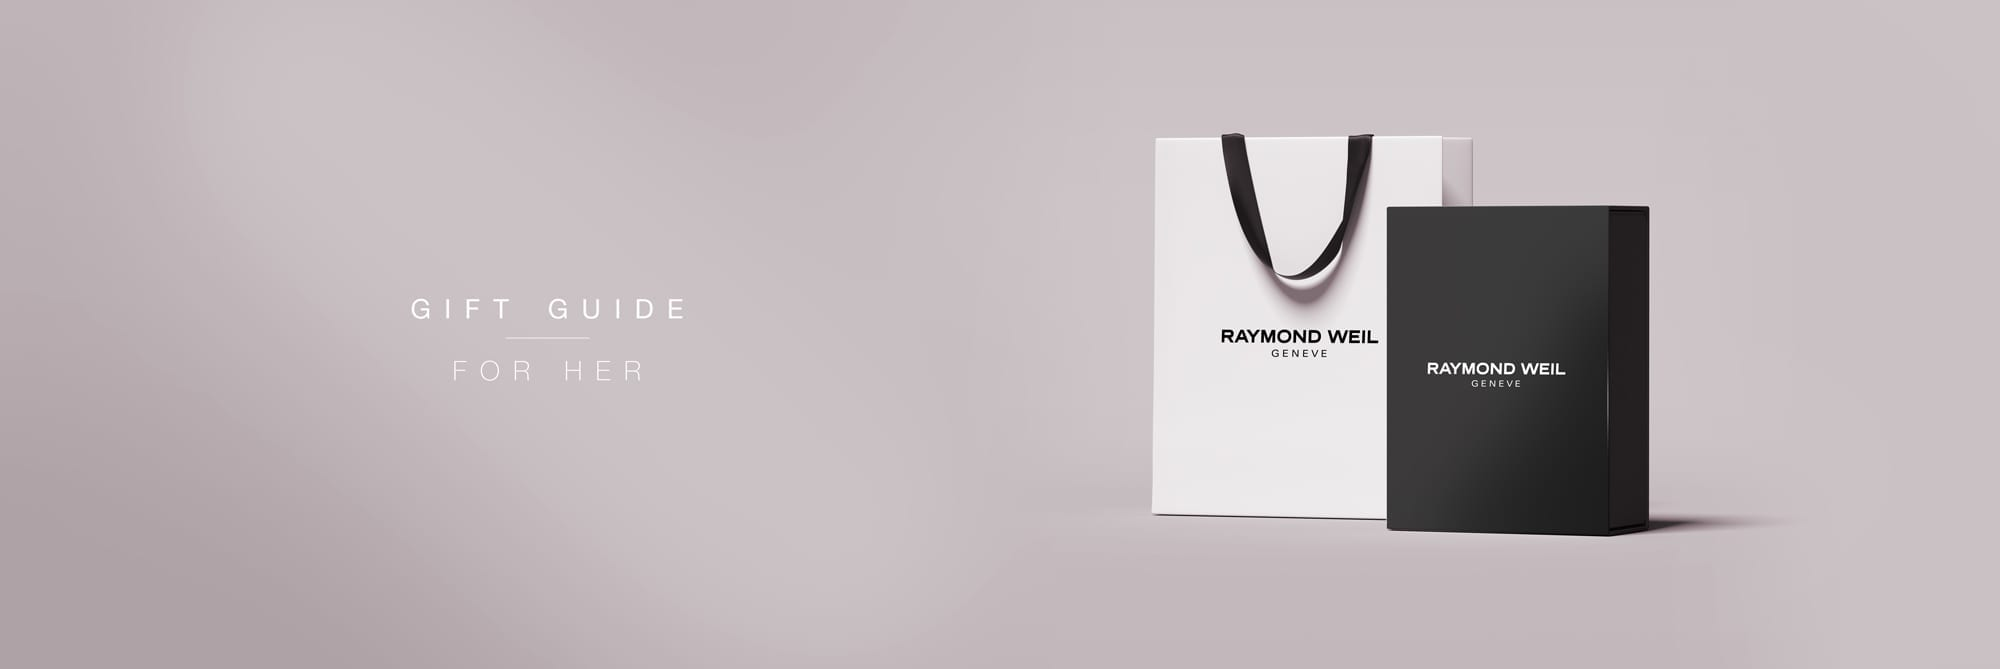 Gift for Her RAYMOND WEIL Gift Bags